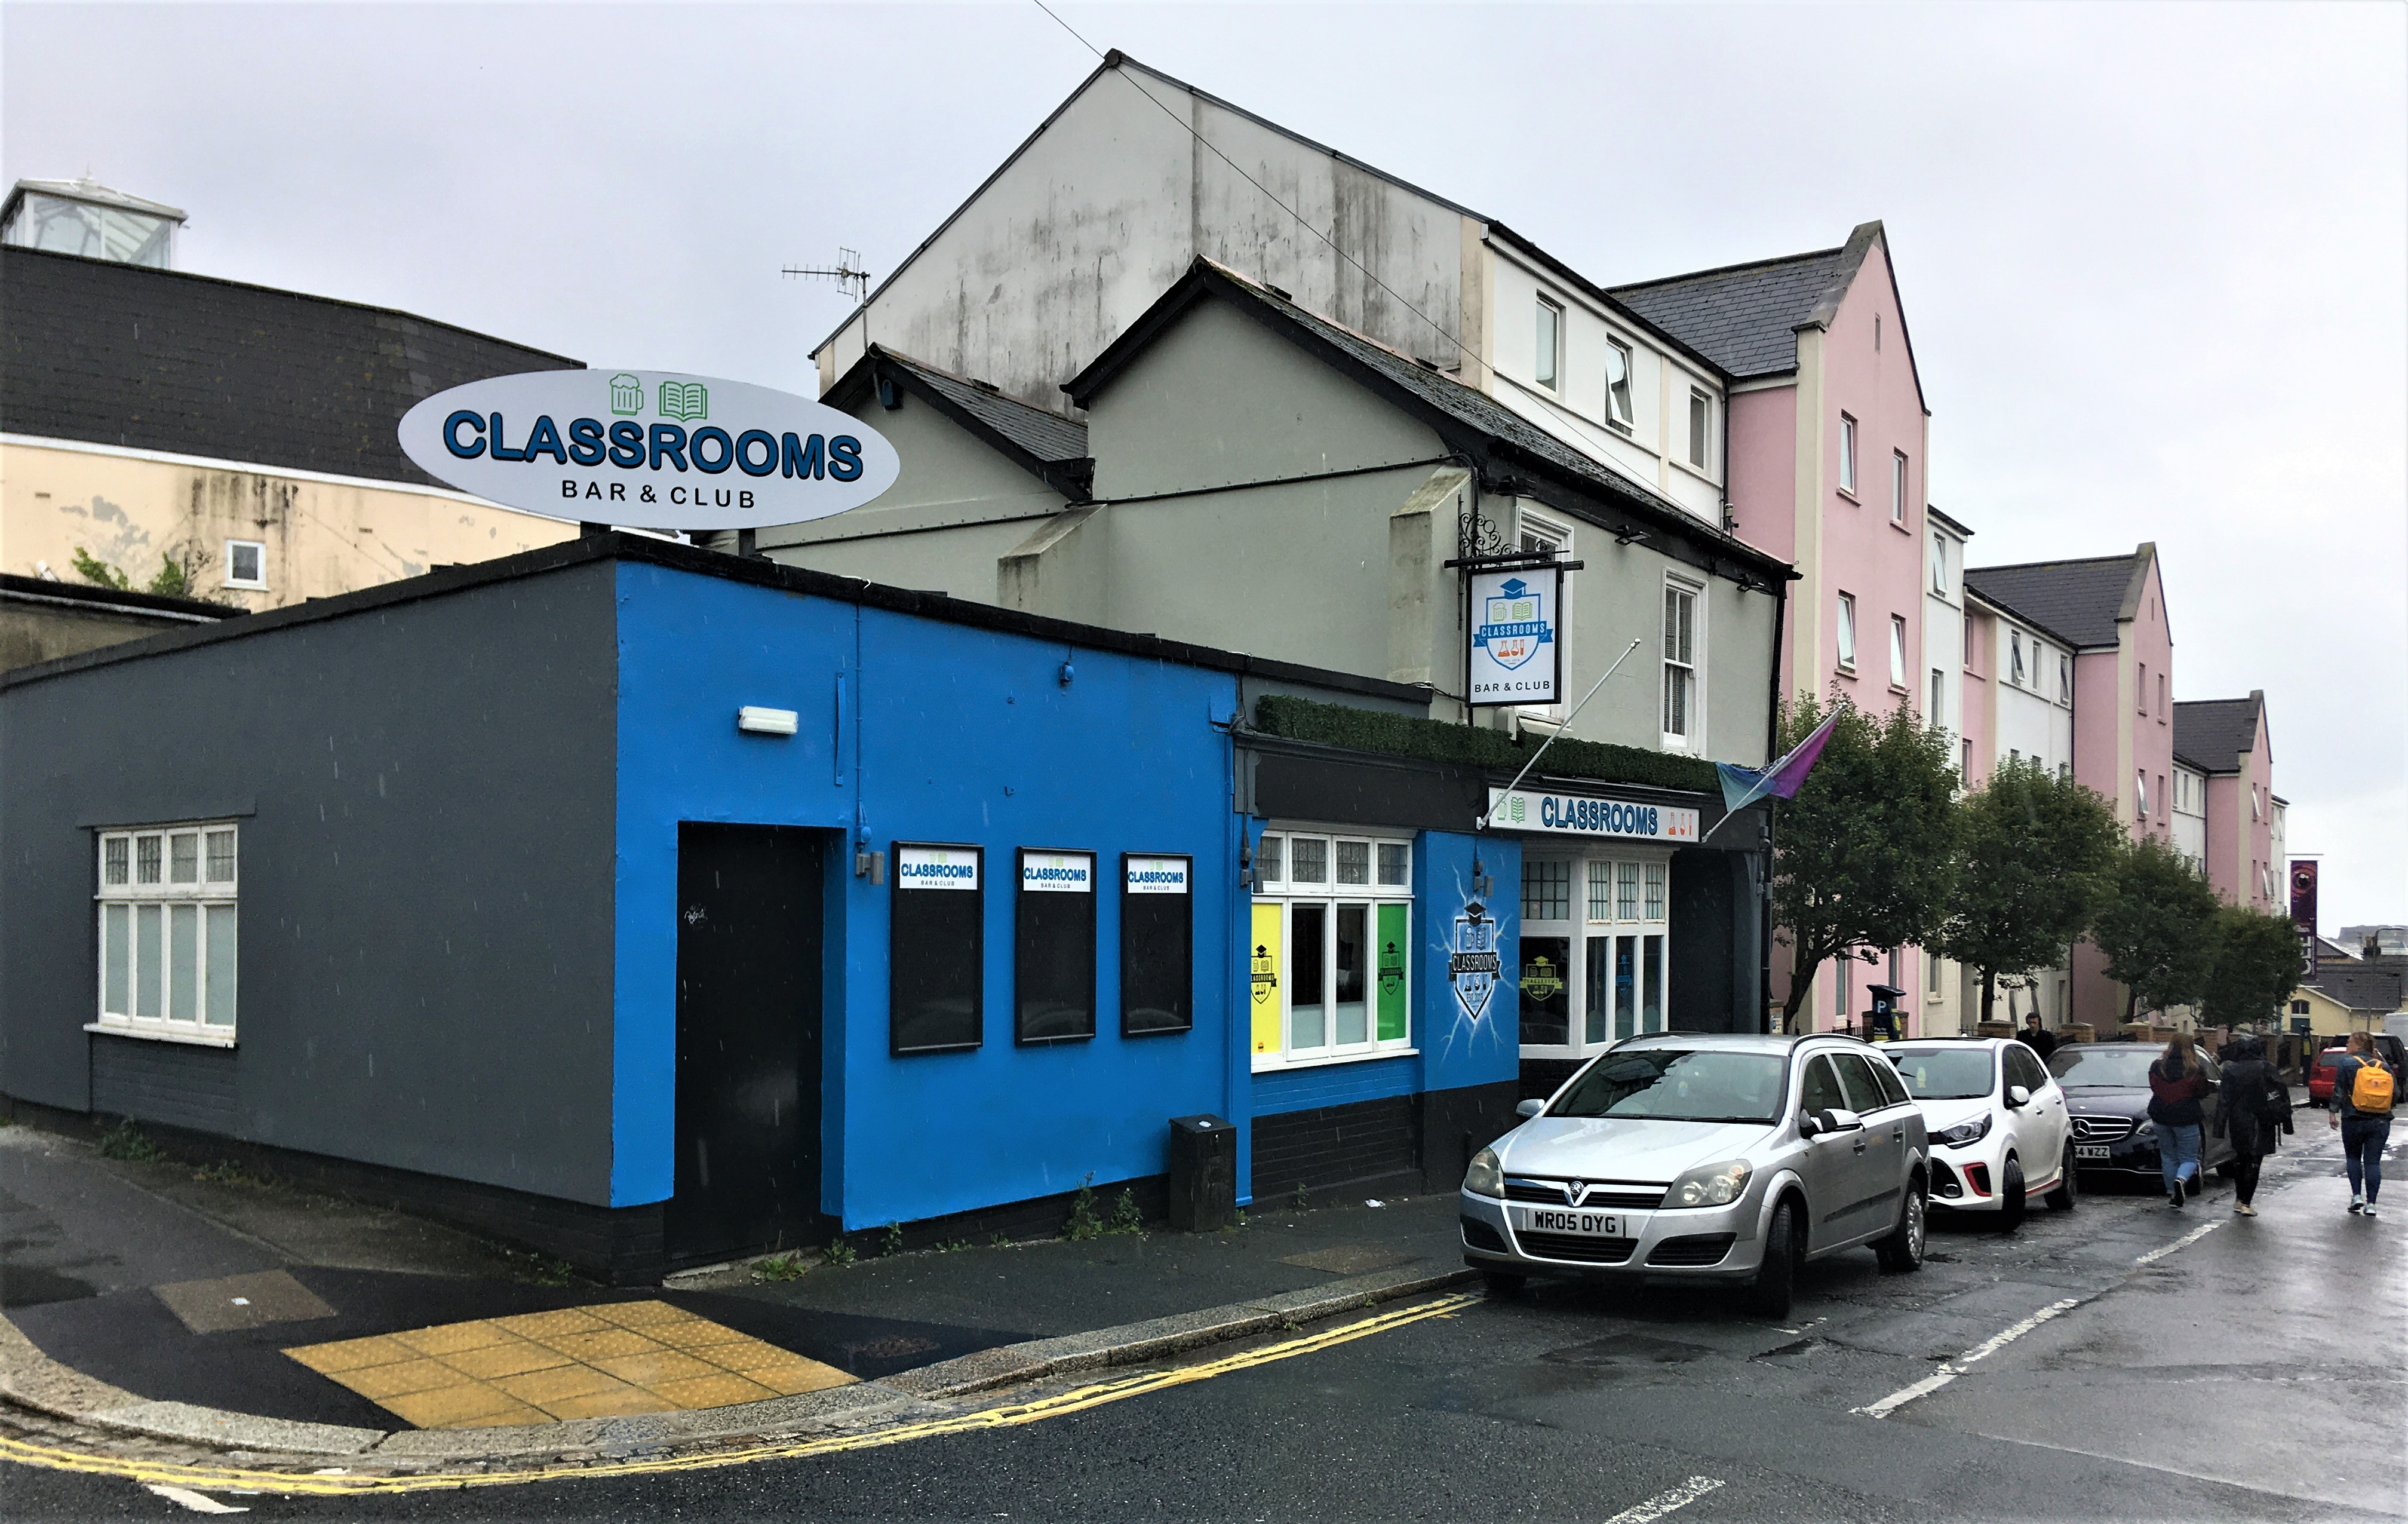 Leisure Plymouth, PL4 8BZ - Classrooms Bar and Club